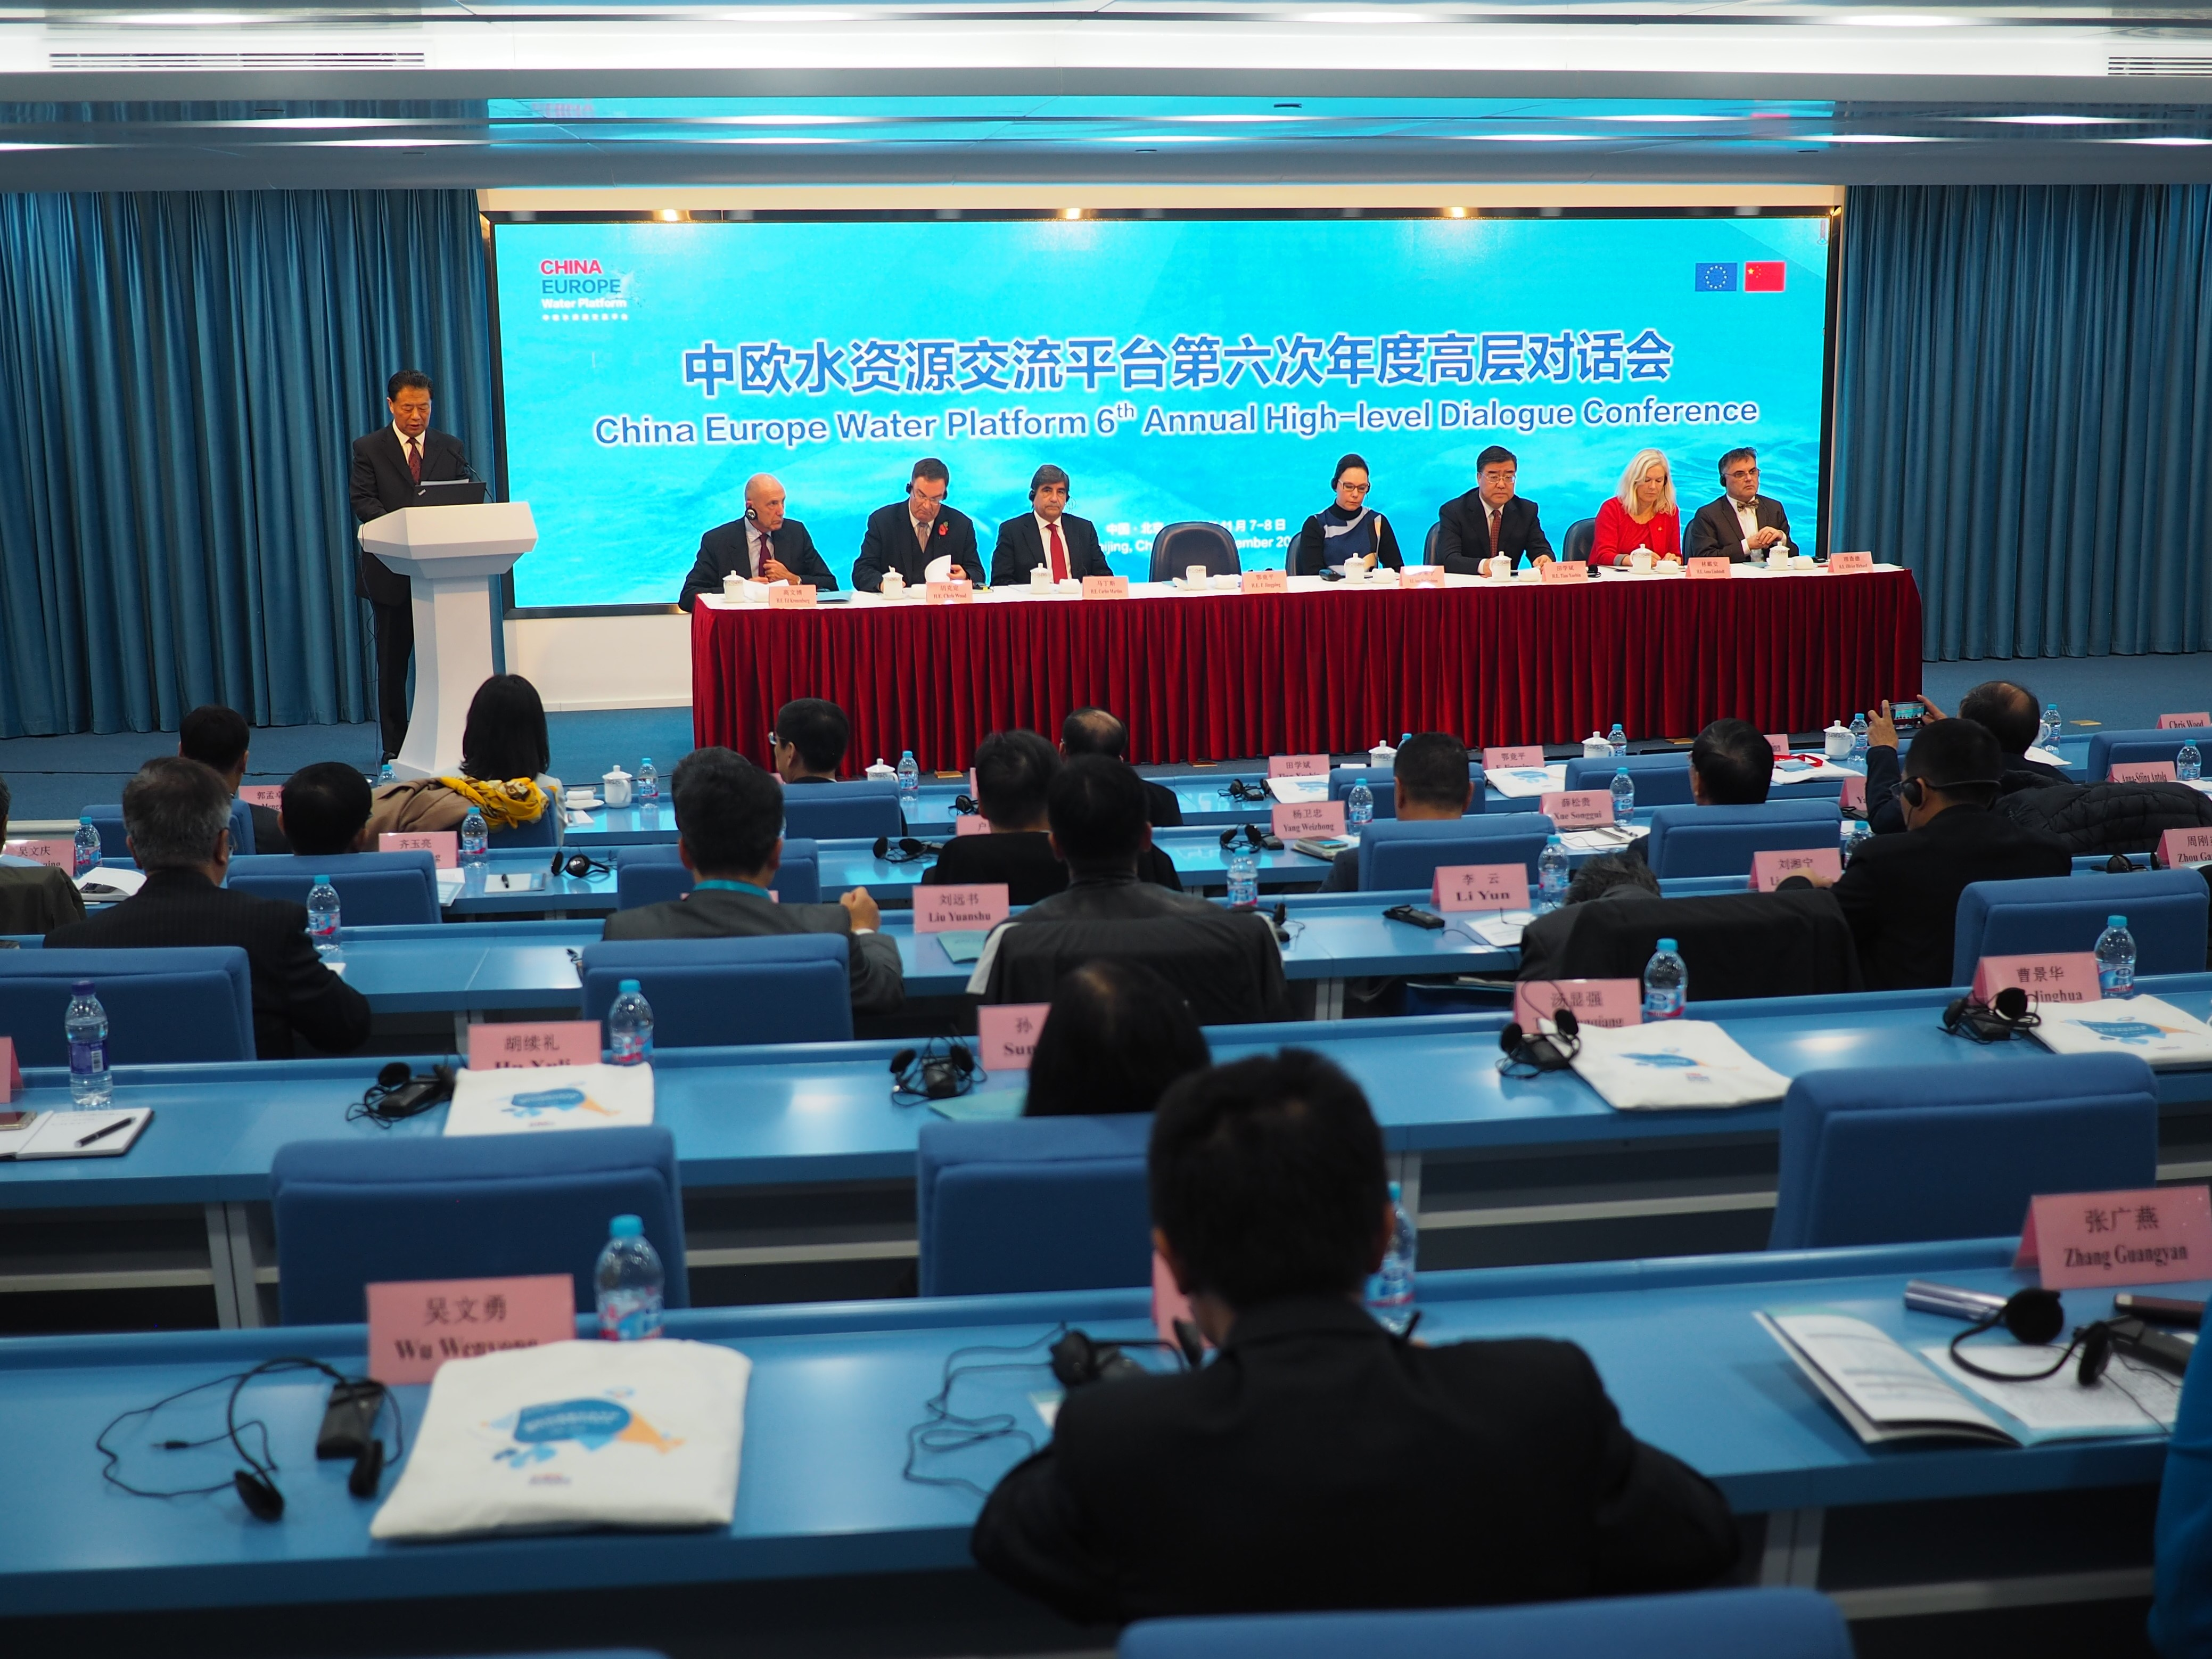 6th Annual High-level Dialogue Conference_pressrelease.jpg